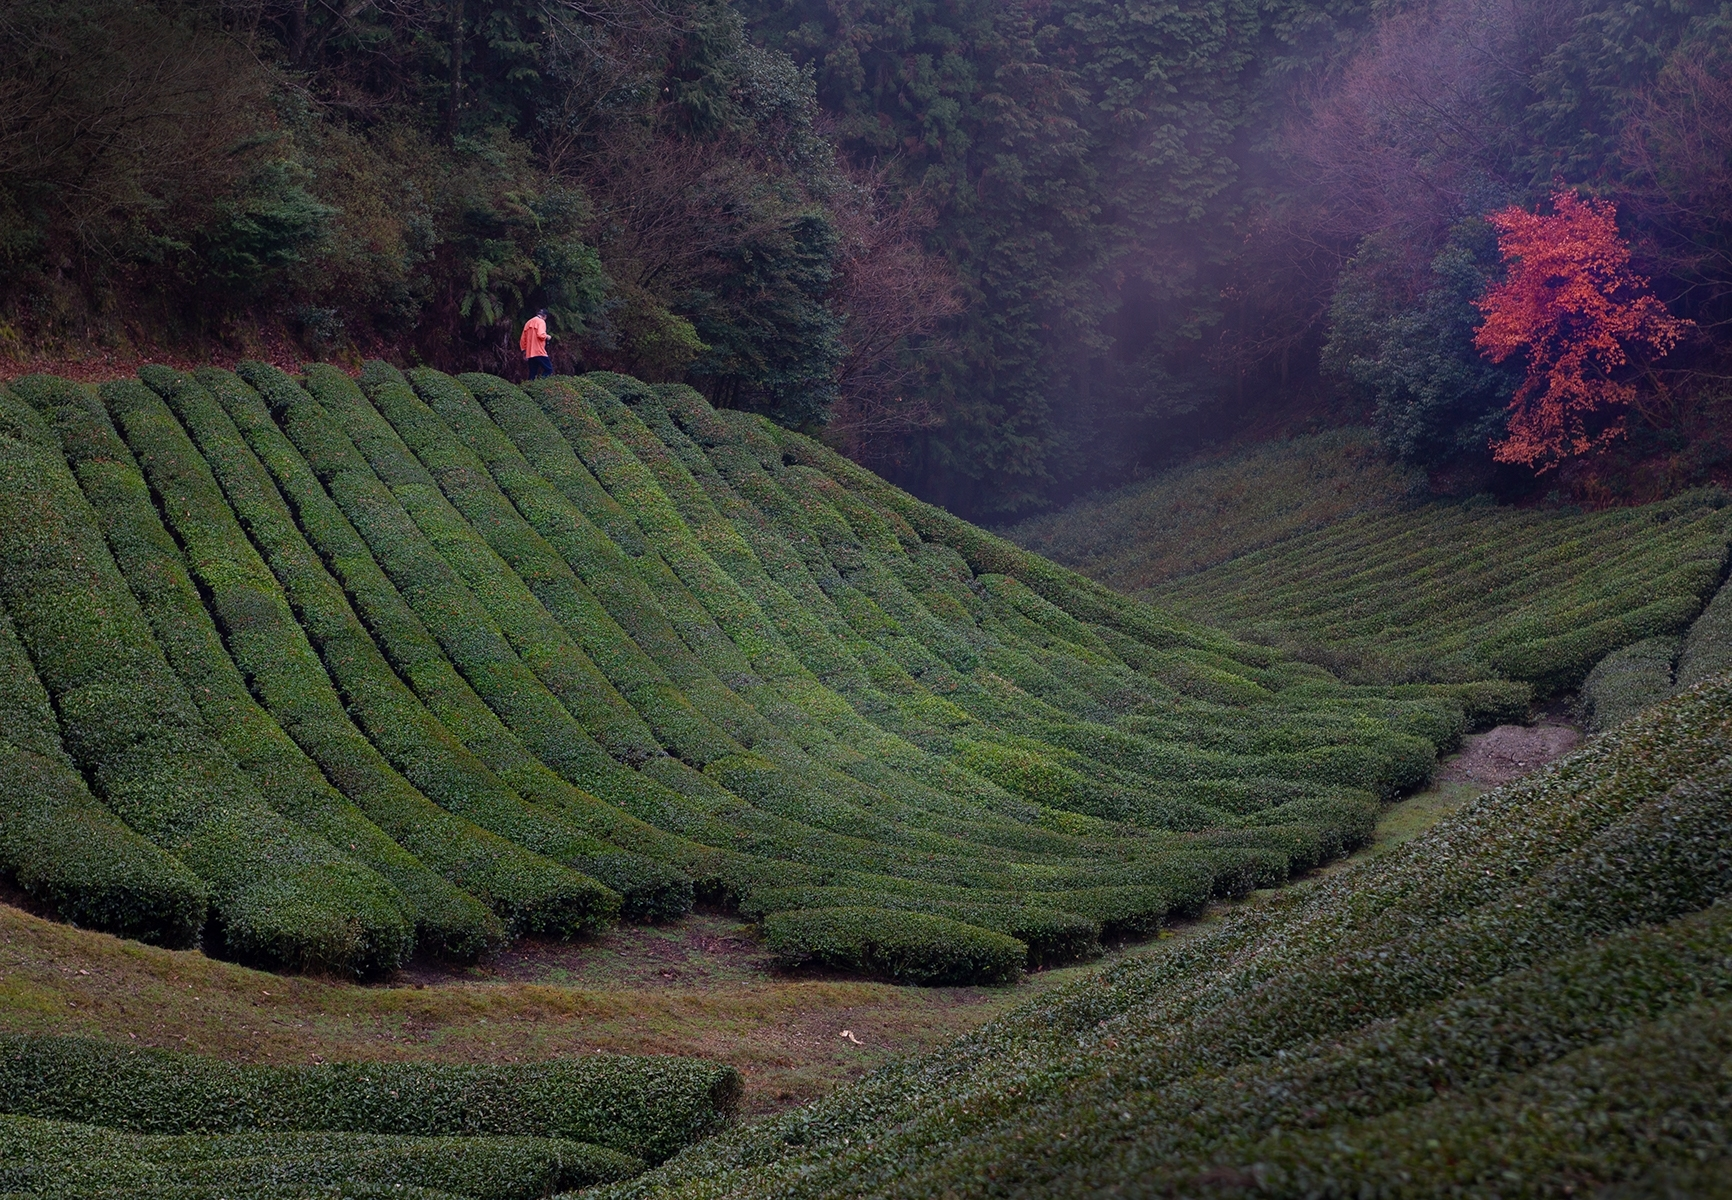 Early-morning-as-the-fog-lifts-in-the-tea-fields-of-Wazuka-Japan-TB-1-Place-by-Dana-Christensen-MR